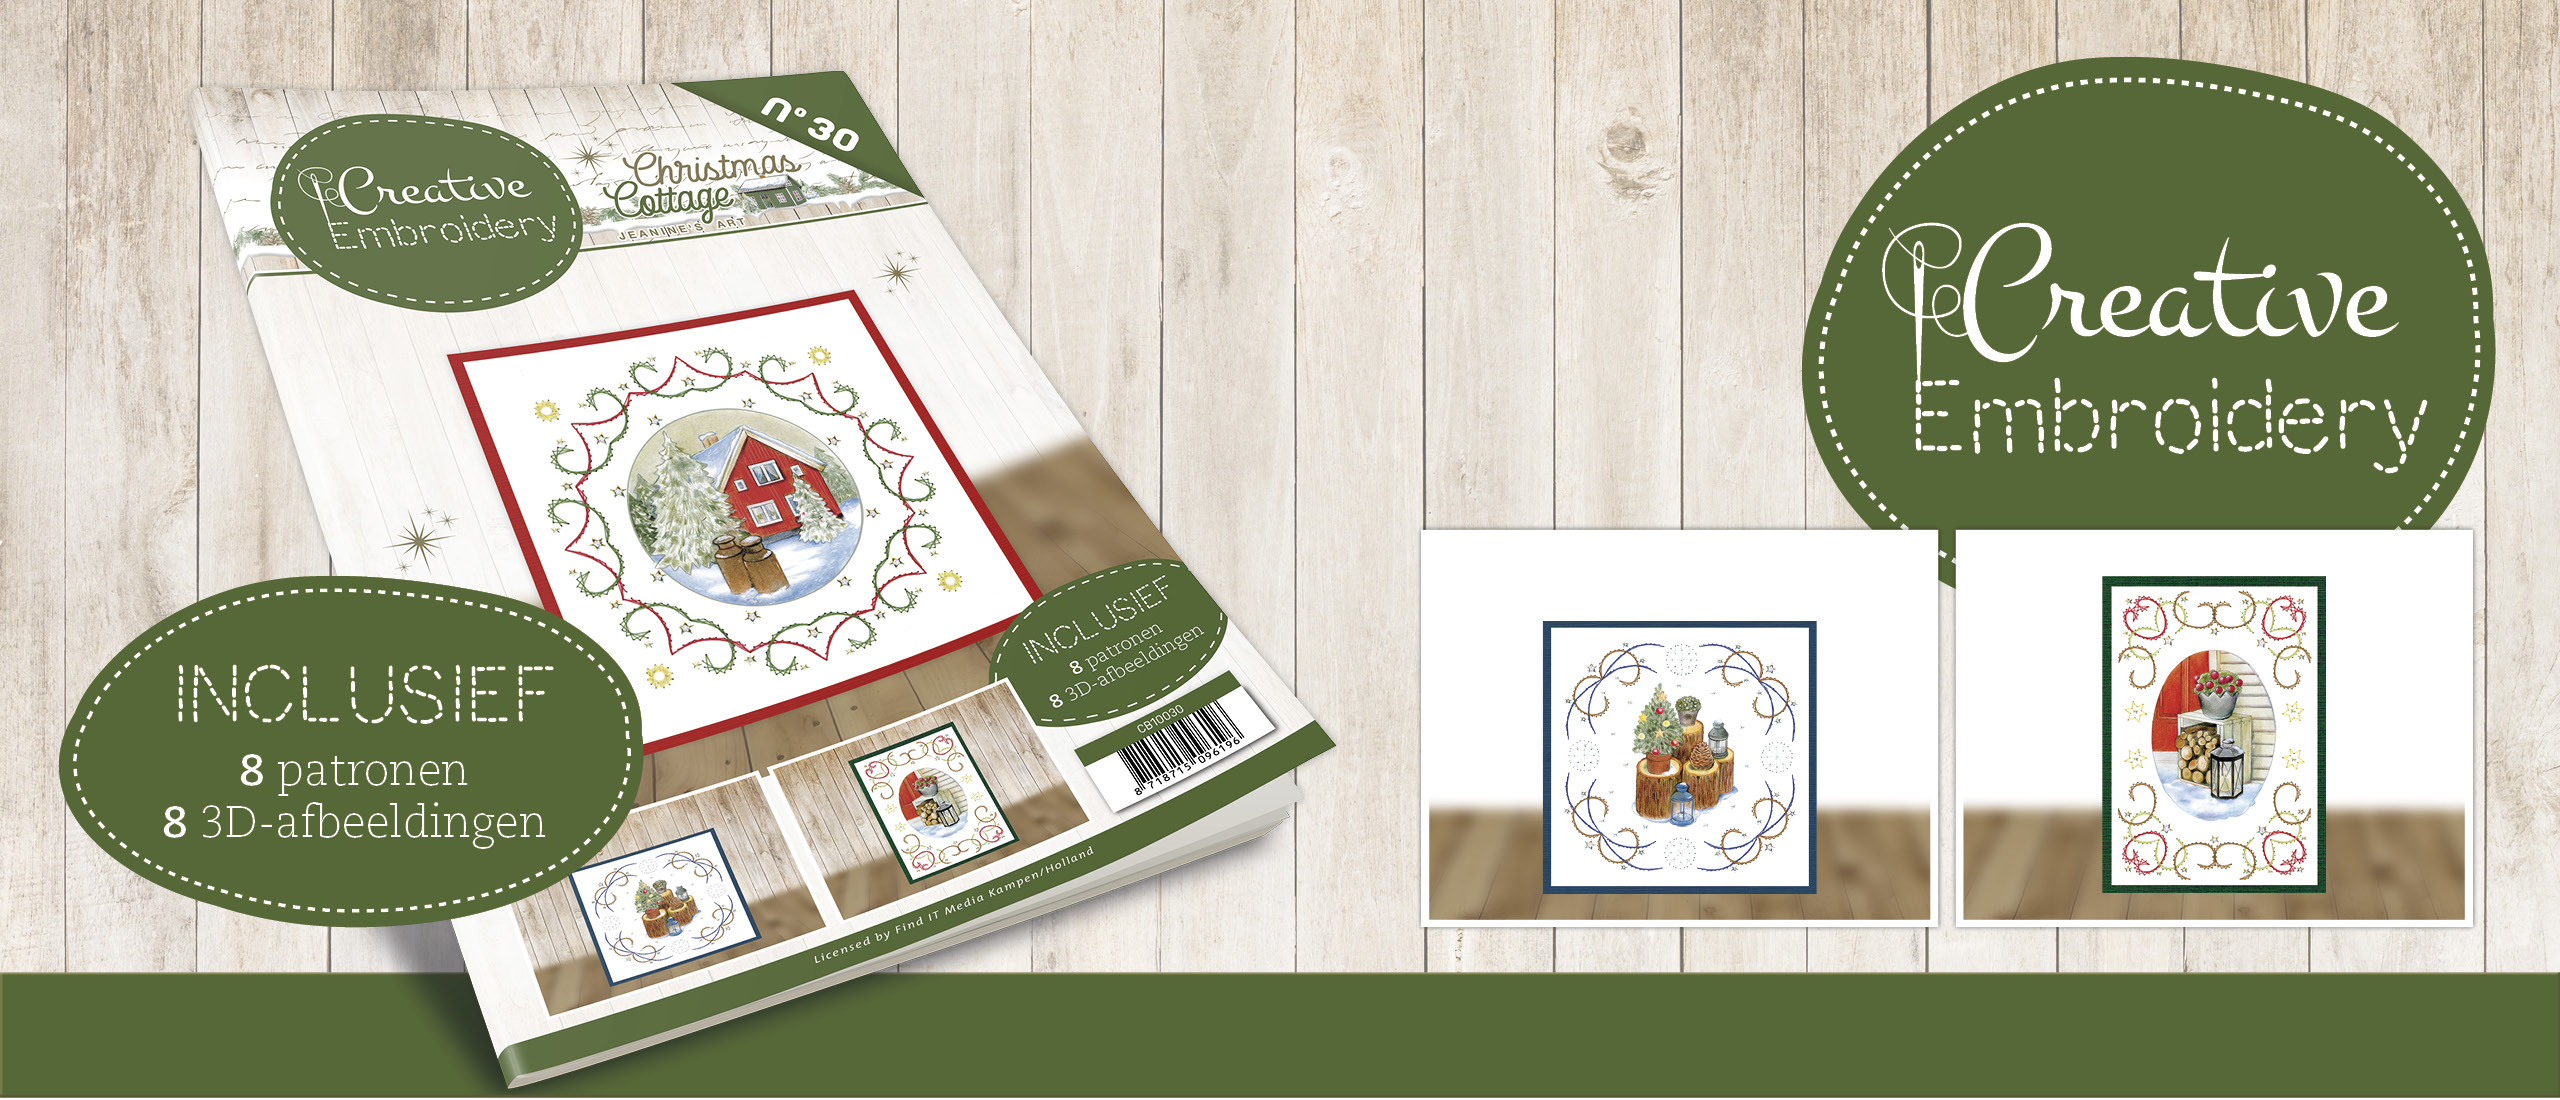 Creative Embroidery 30 - Jeanine's Art - Christmas Cottage